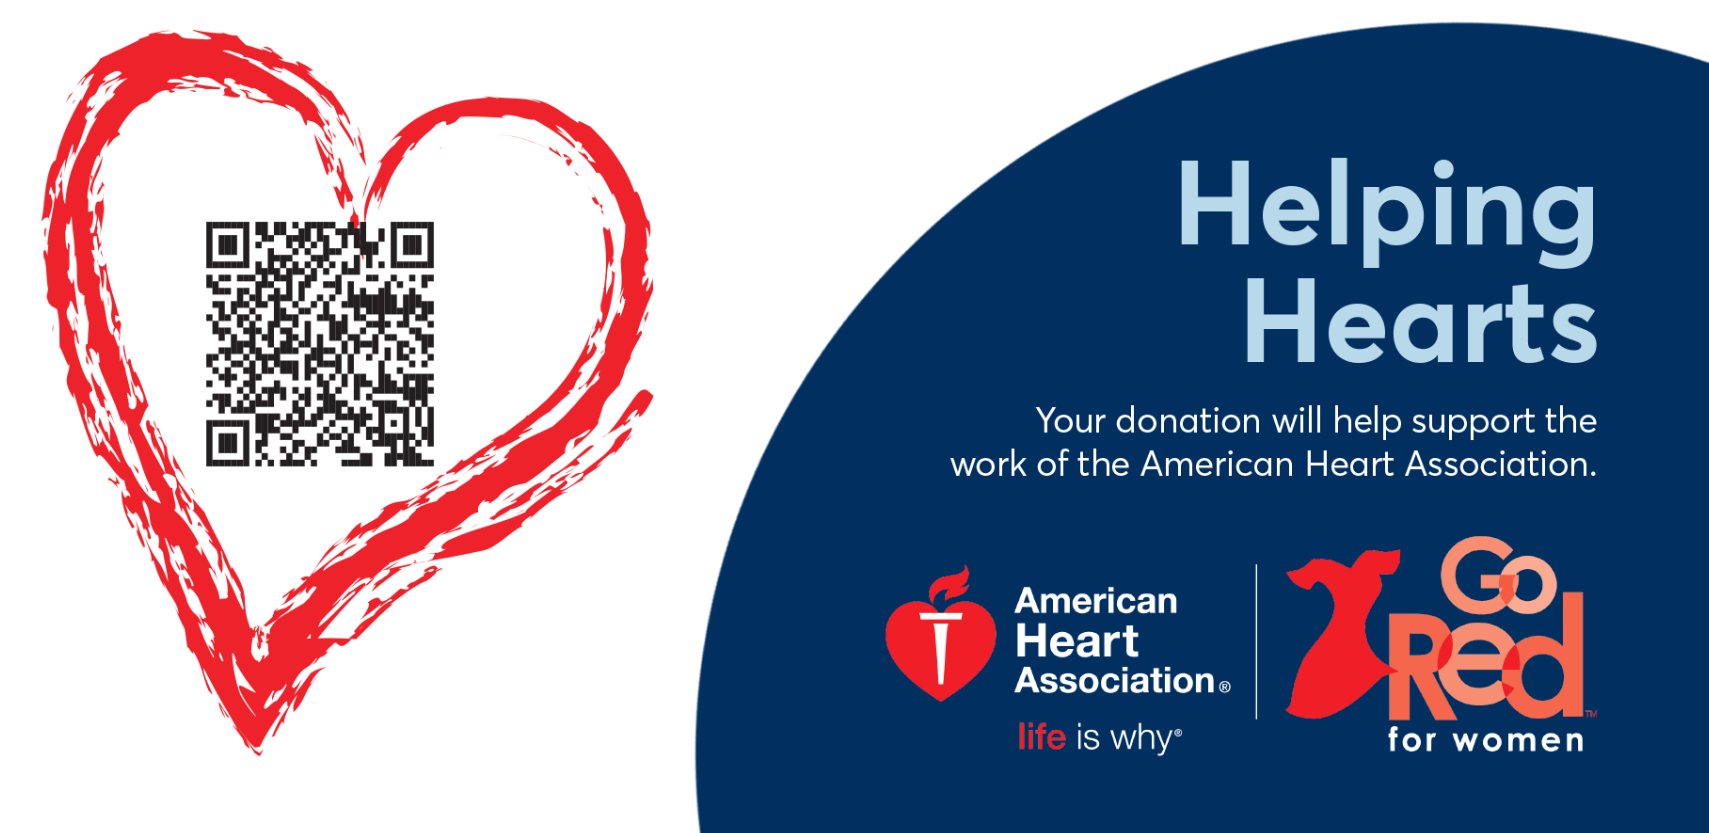 Heping Heart Month Campaign